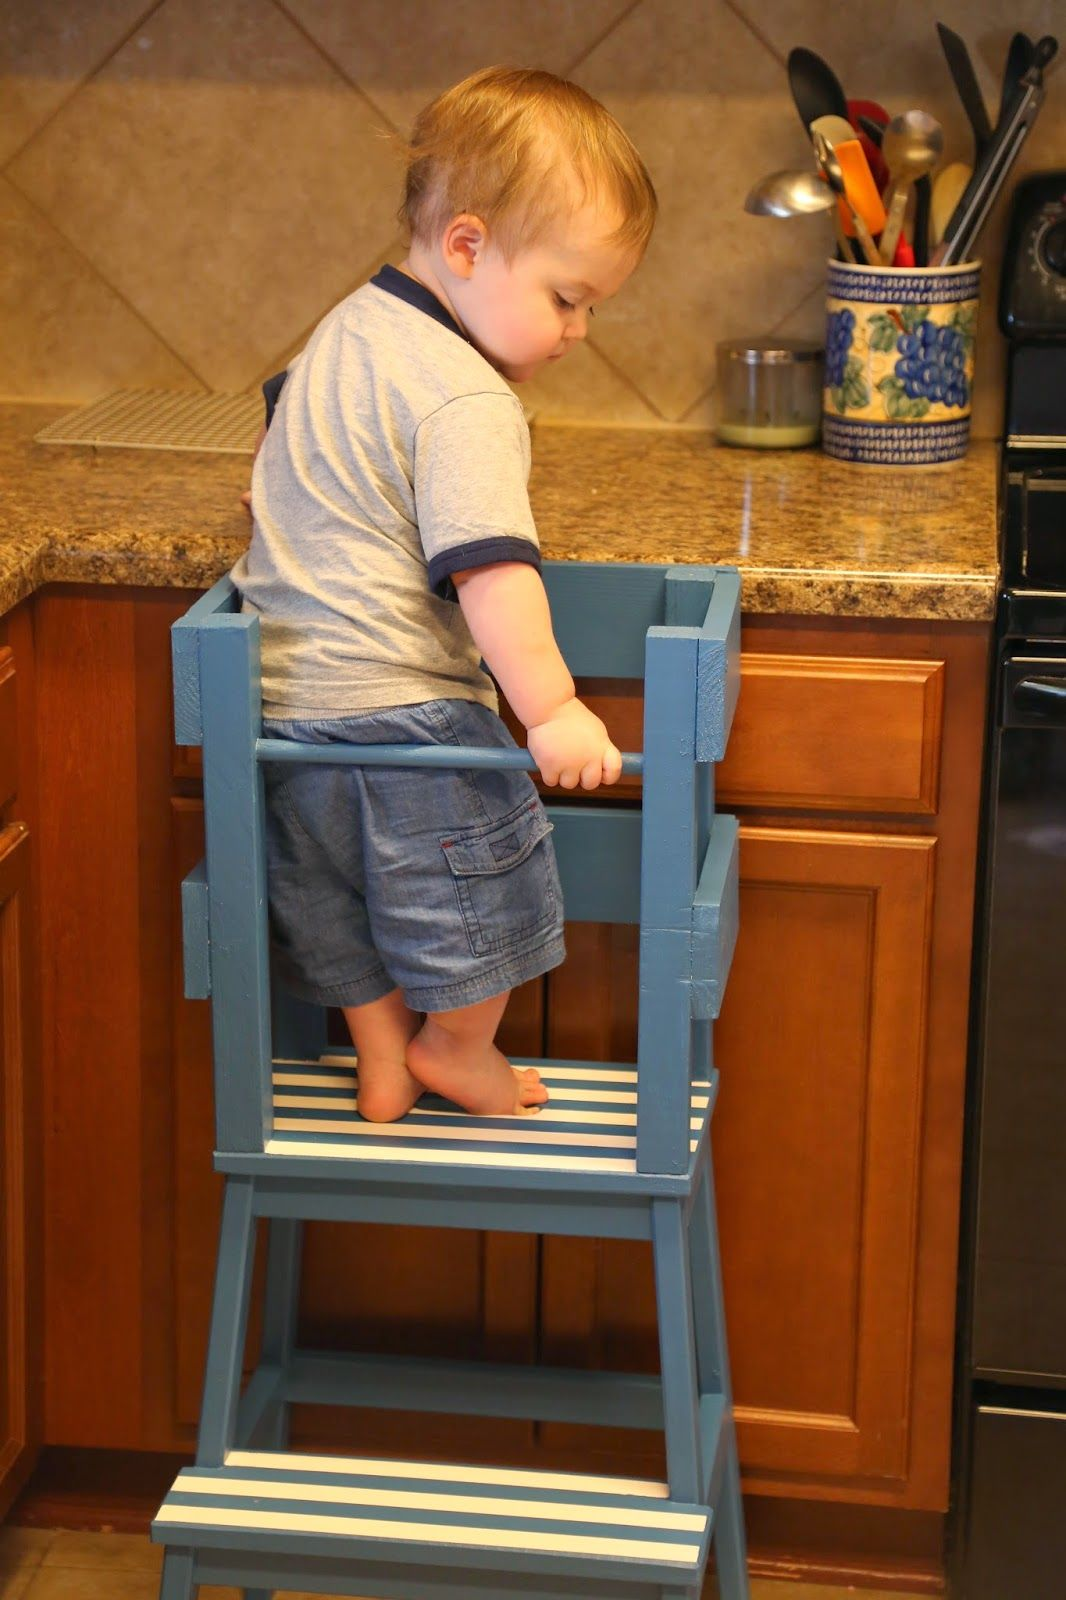 DIY Step Stool with Rails Easy and affordable! Toddler